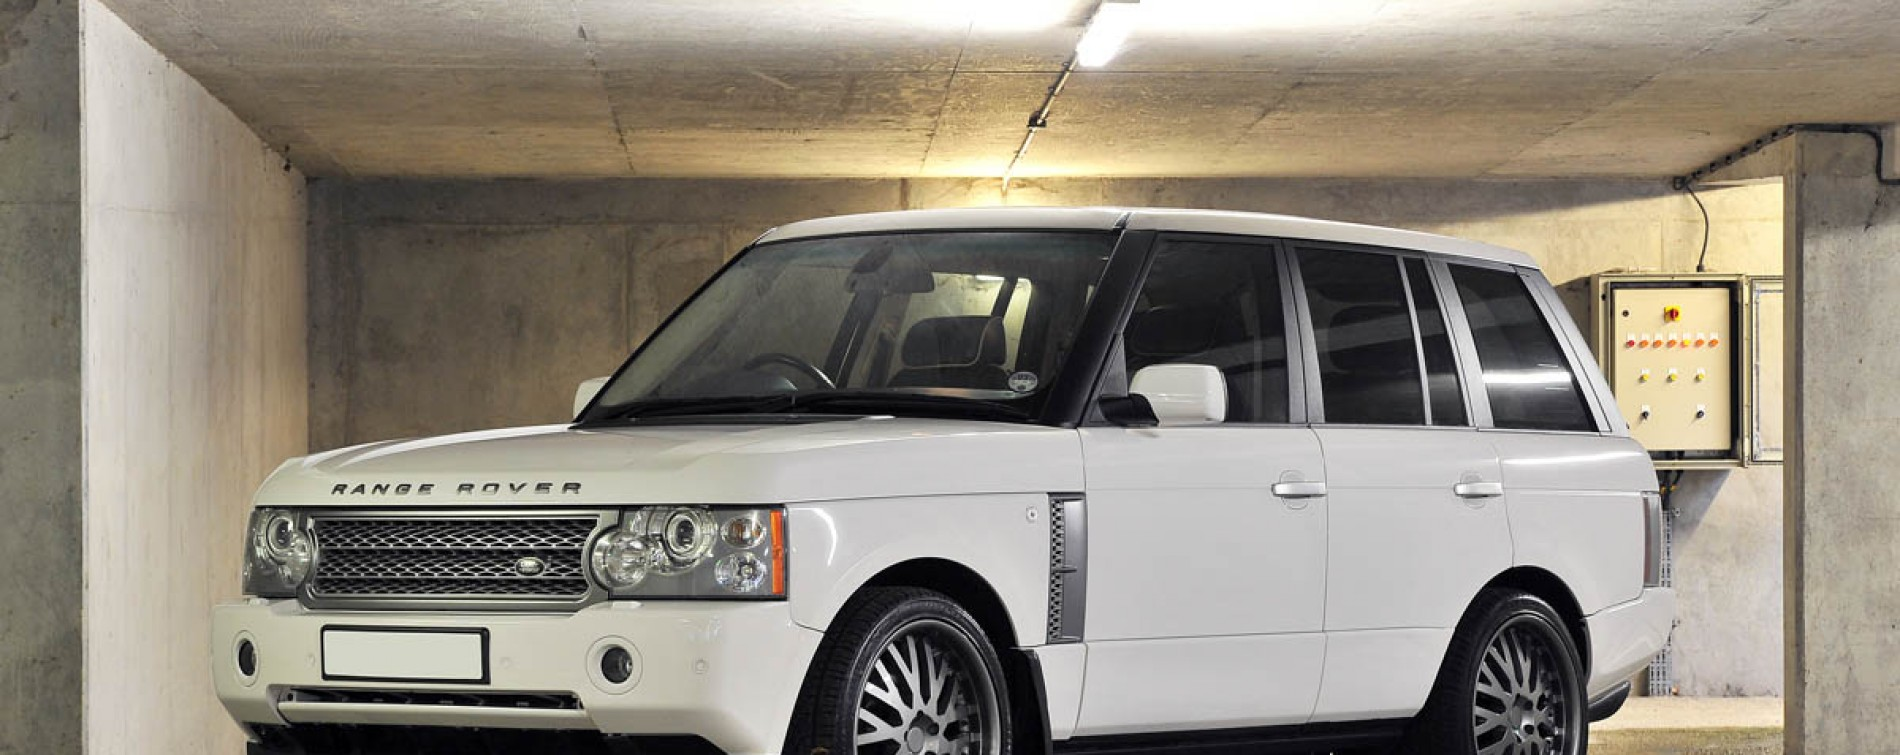 Wheeler Dealers 187 Range Rover